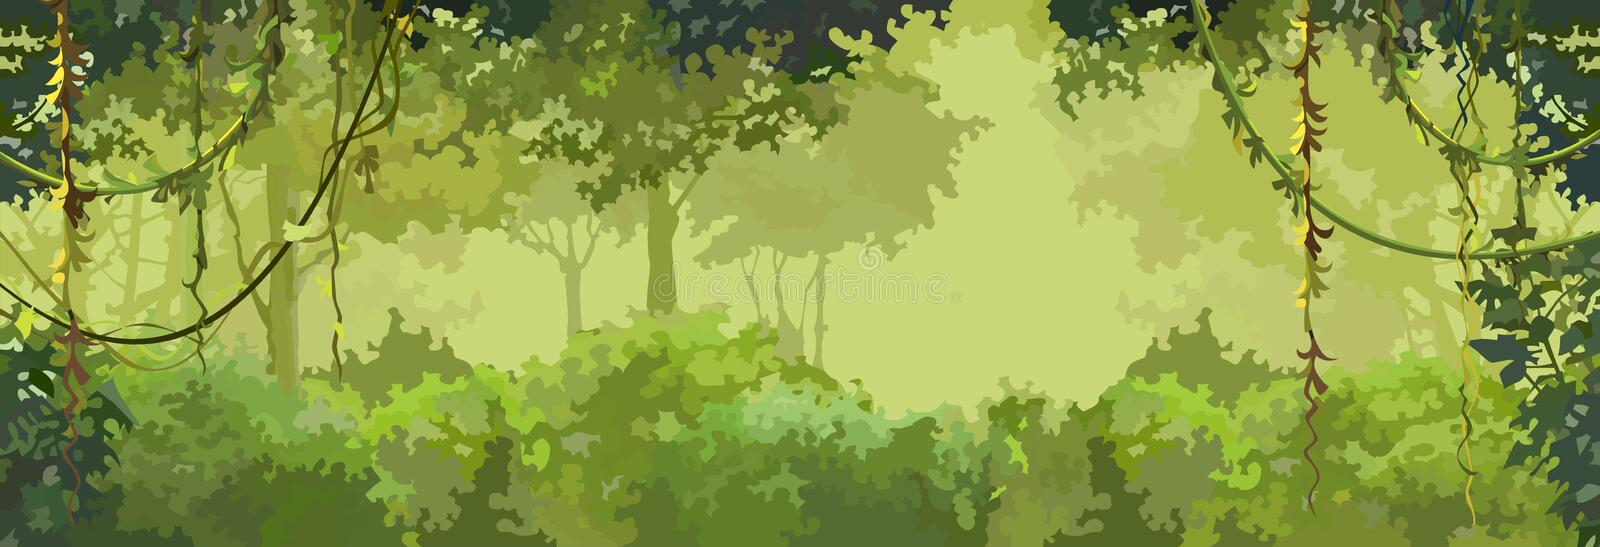 Background cartoon green leafy forest with lianas stock illustration